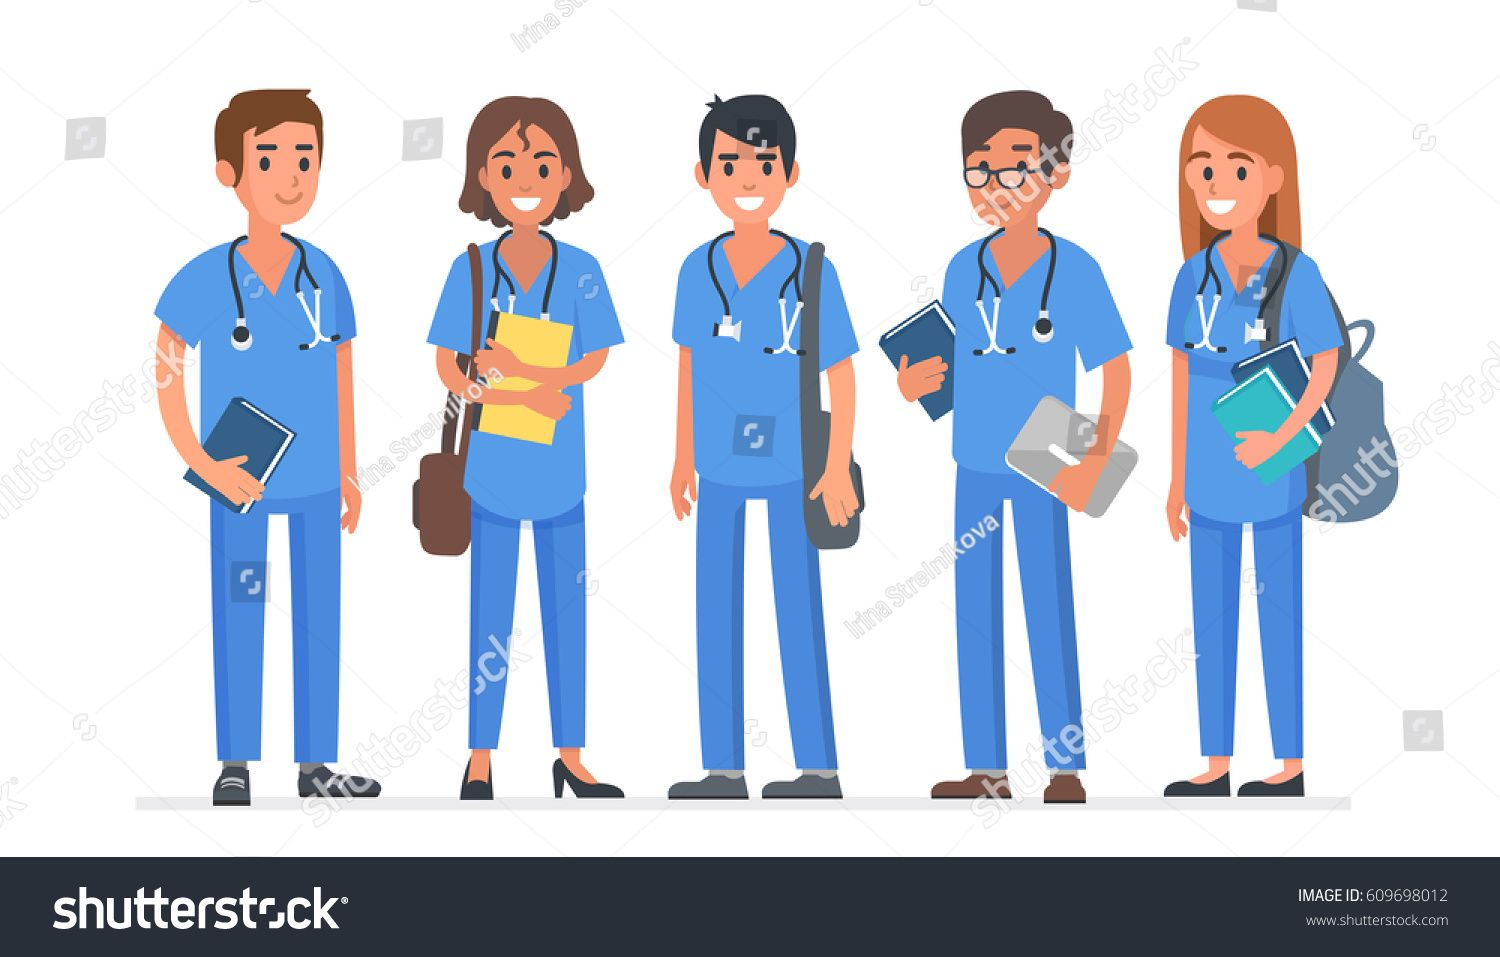 Group of young medical students. Students team. Vector